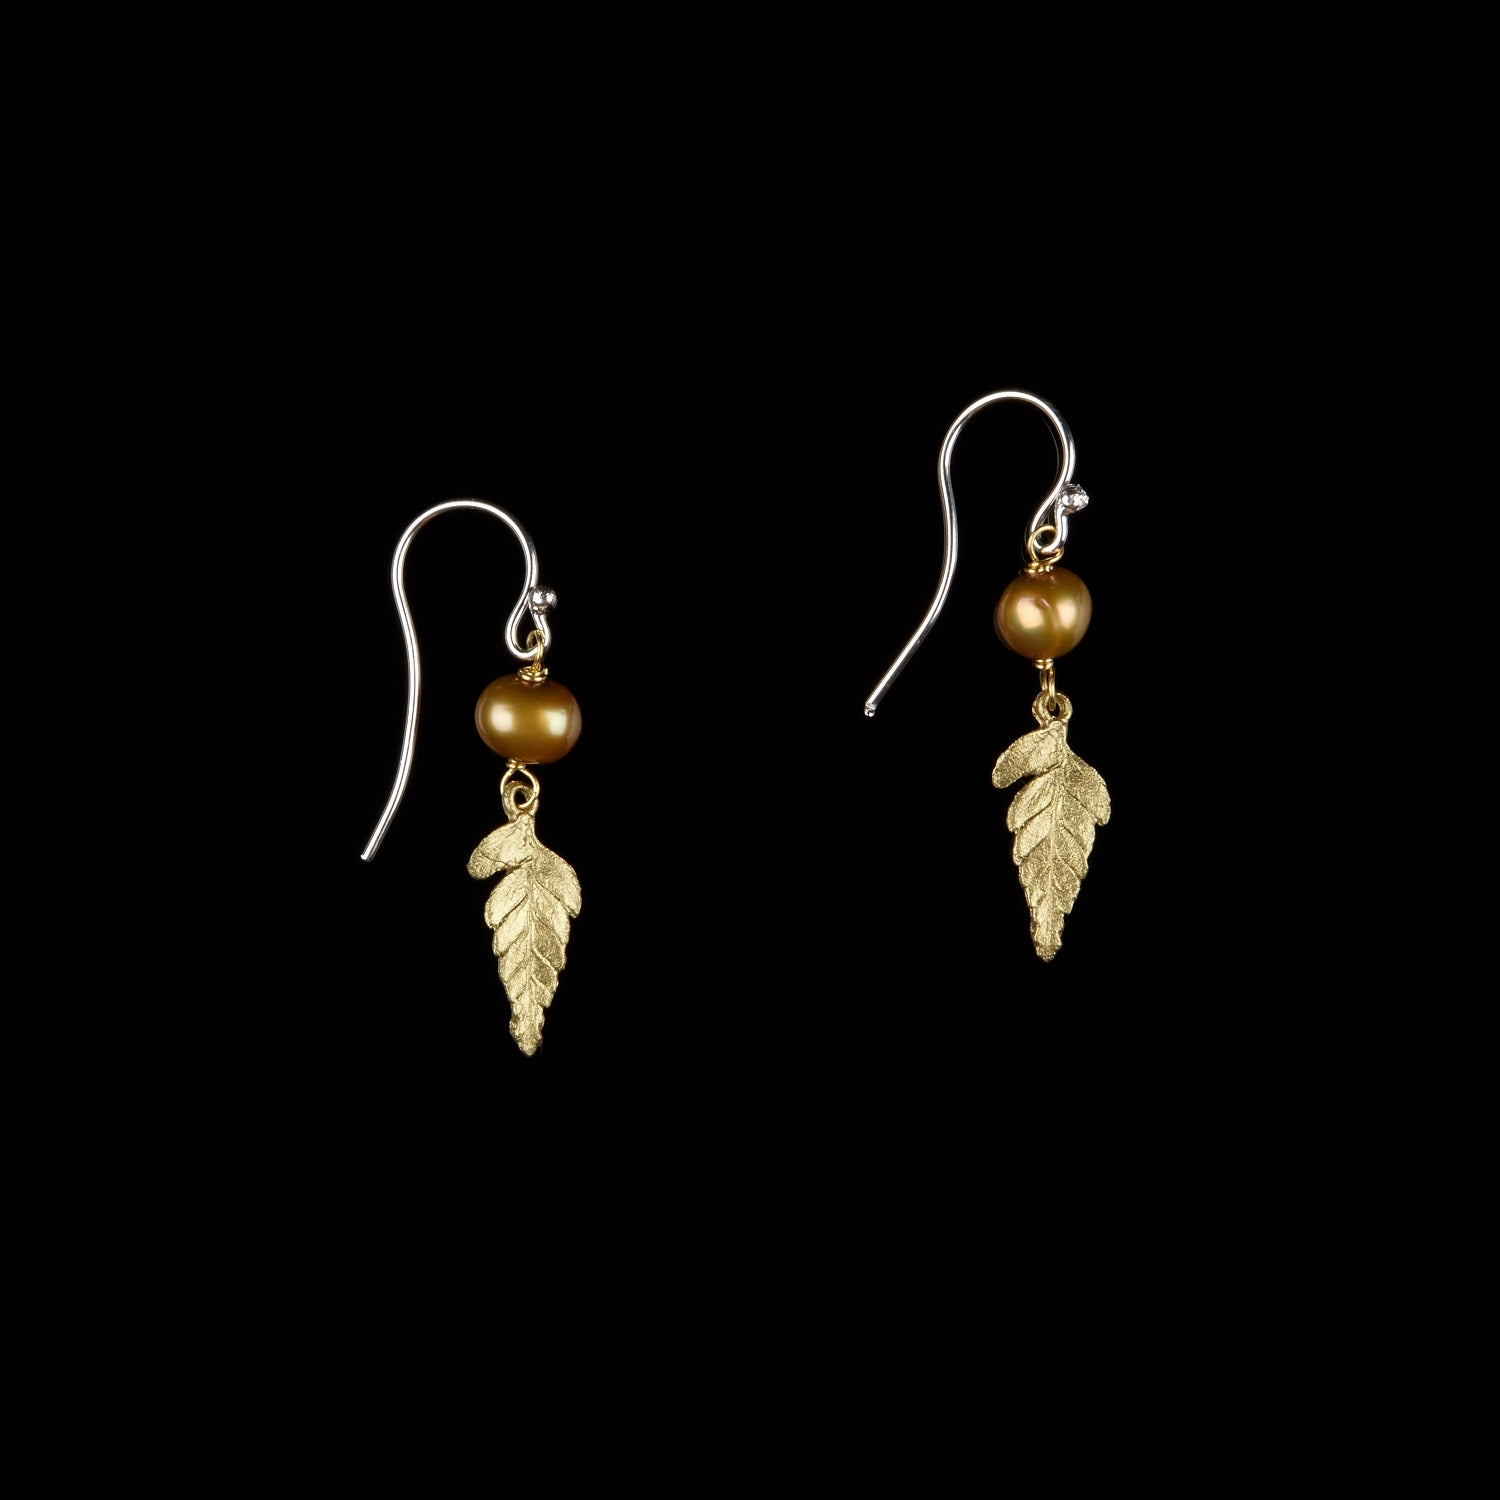 Fern Earrings - Small Single Leaf with Pearl